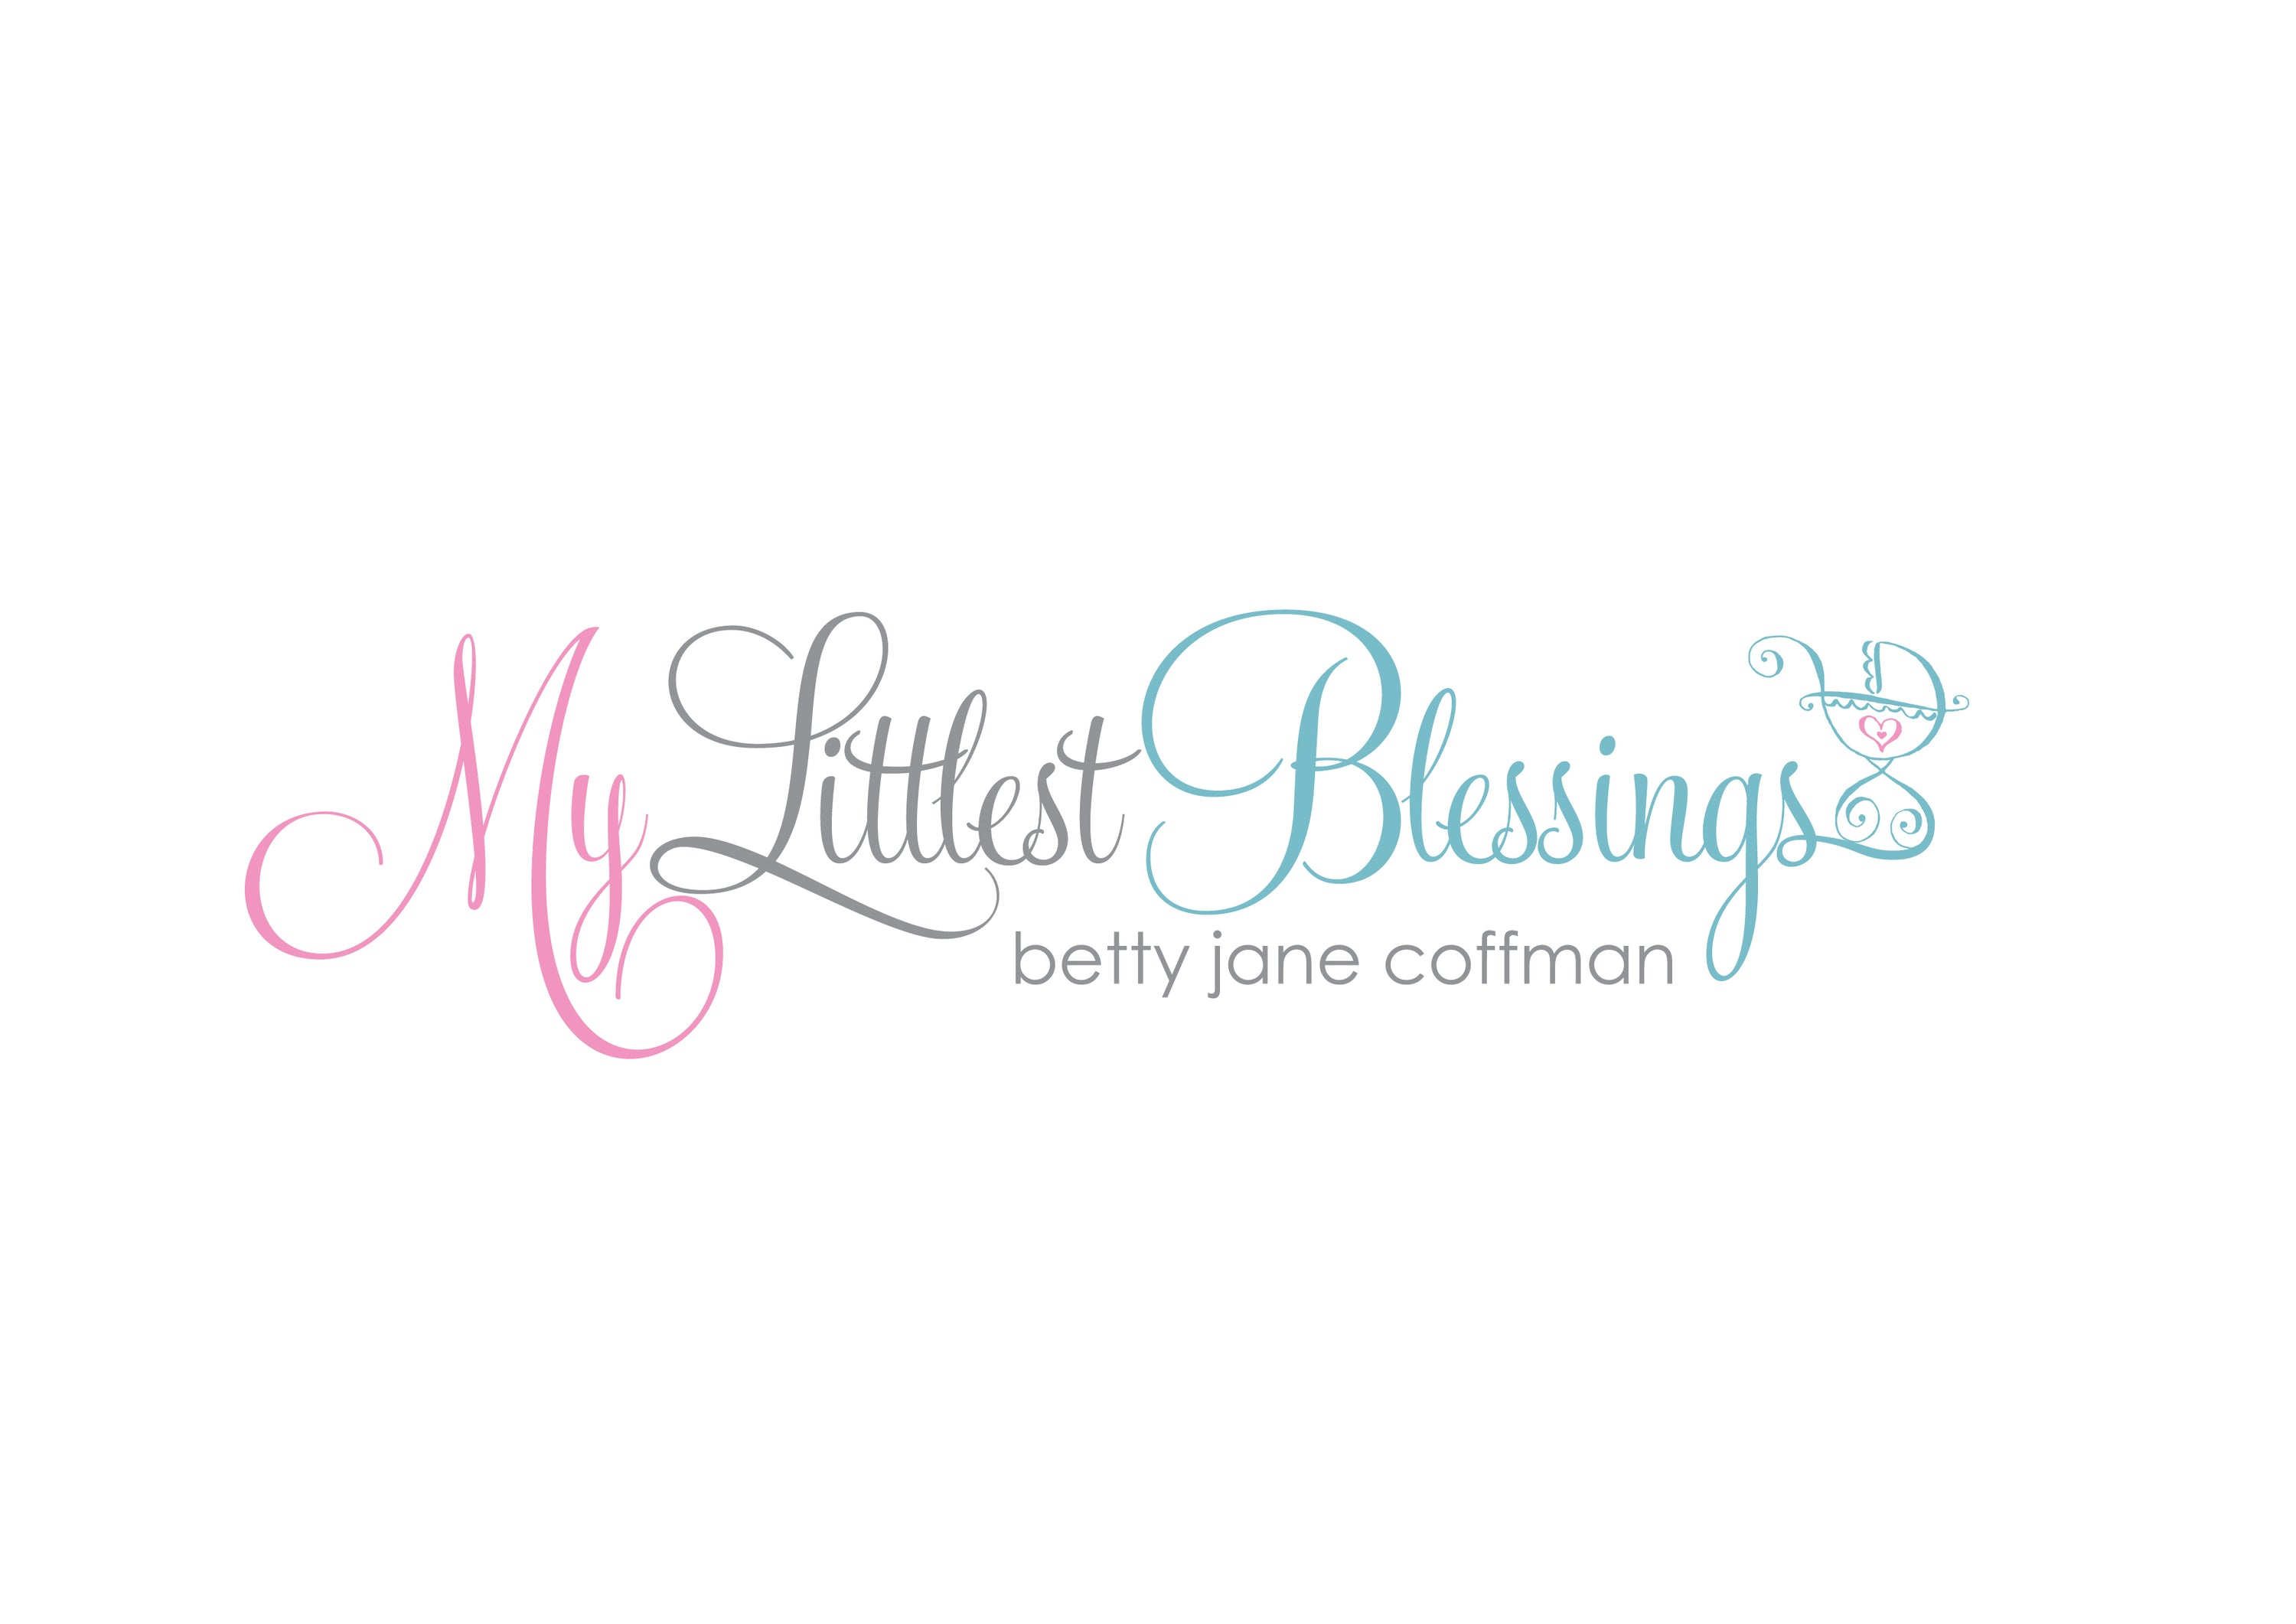 MyLittlestBlessings